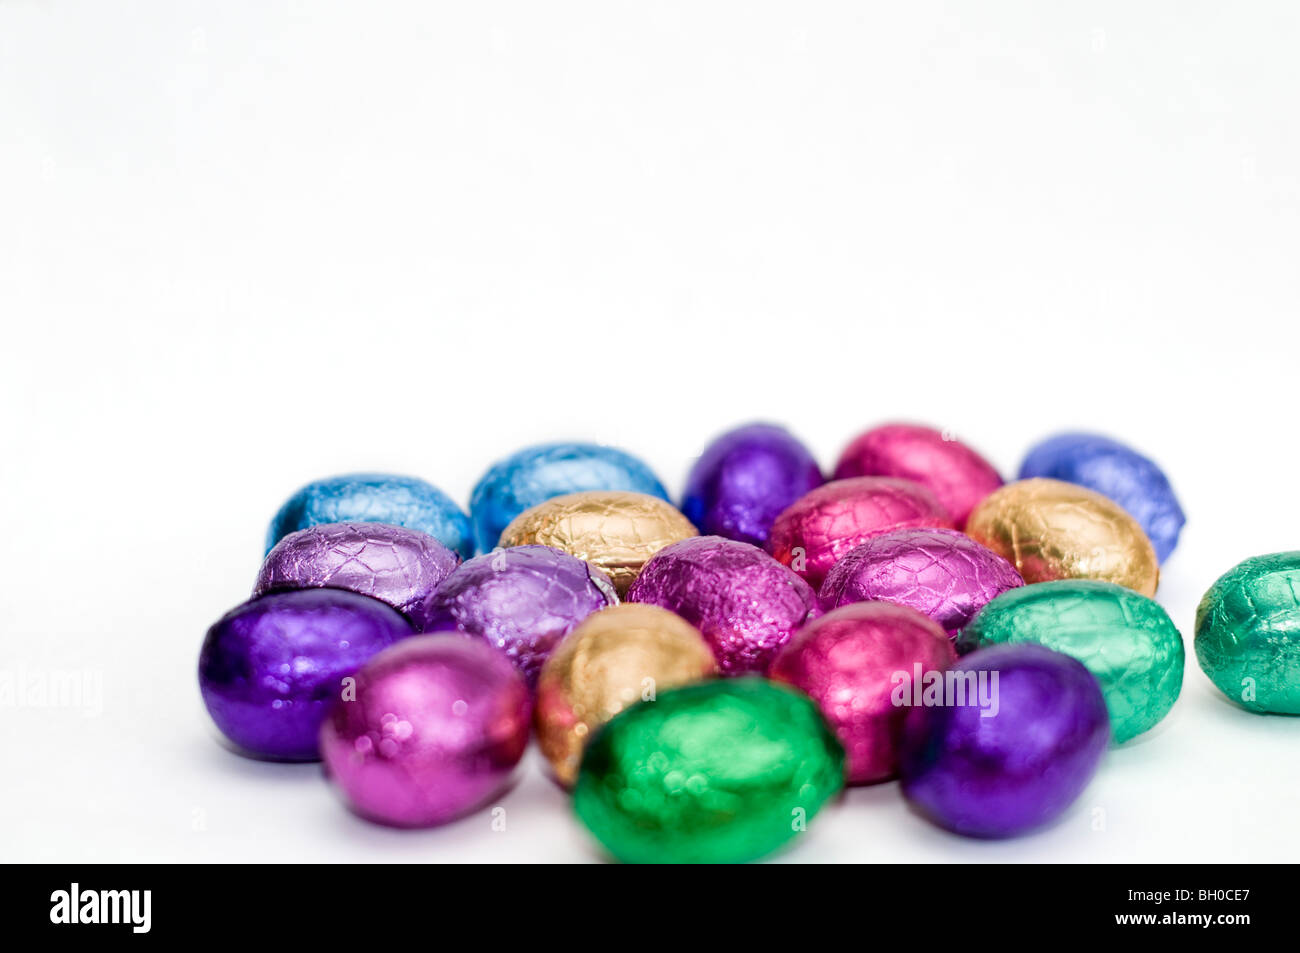 A selection of colorful mini chocolate Easter eggs on a white background Stock Photo